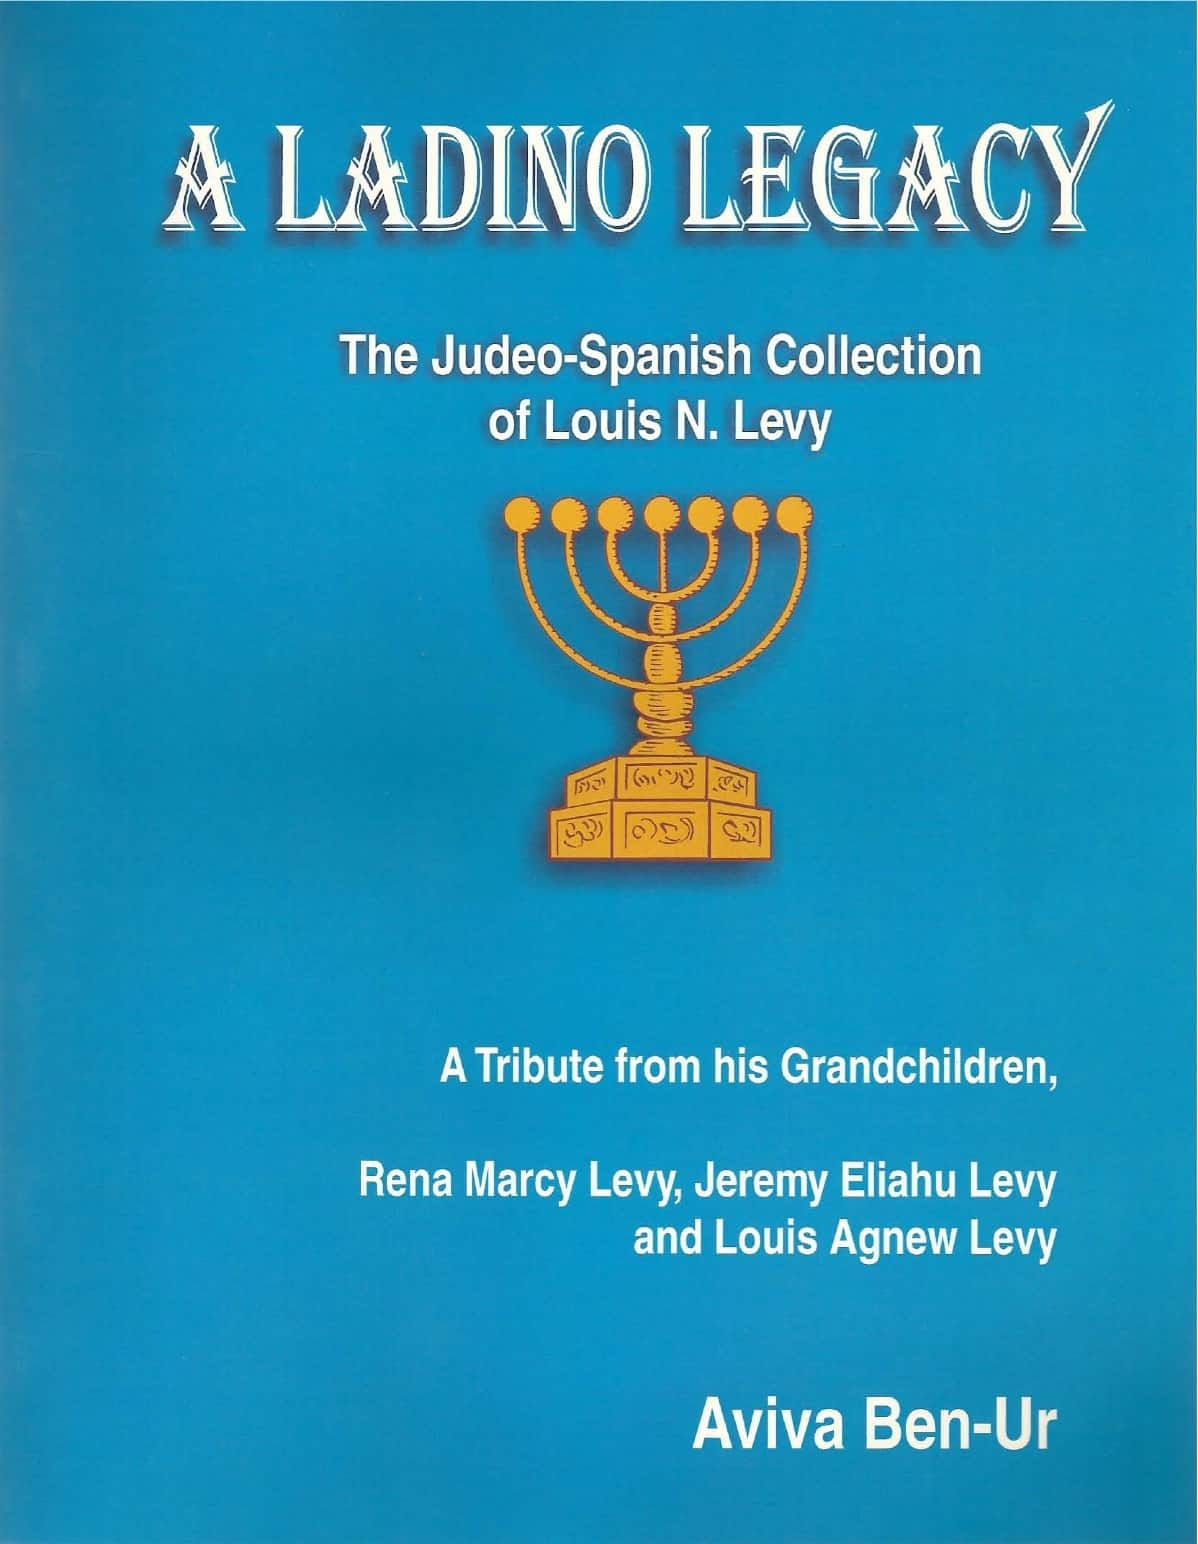 A Ladino legacy: The Judeo-Spanish collection of Louis N. Levy